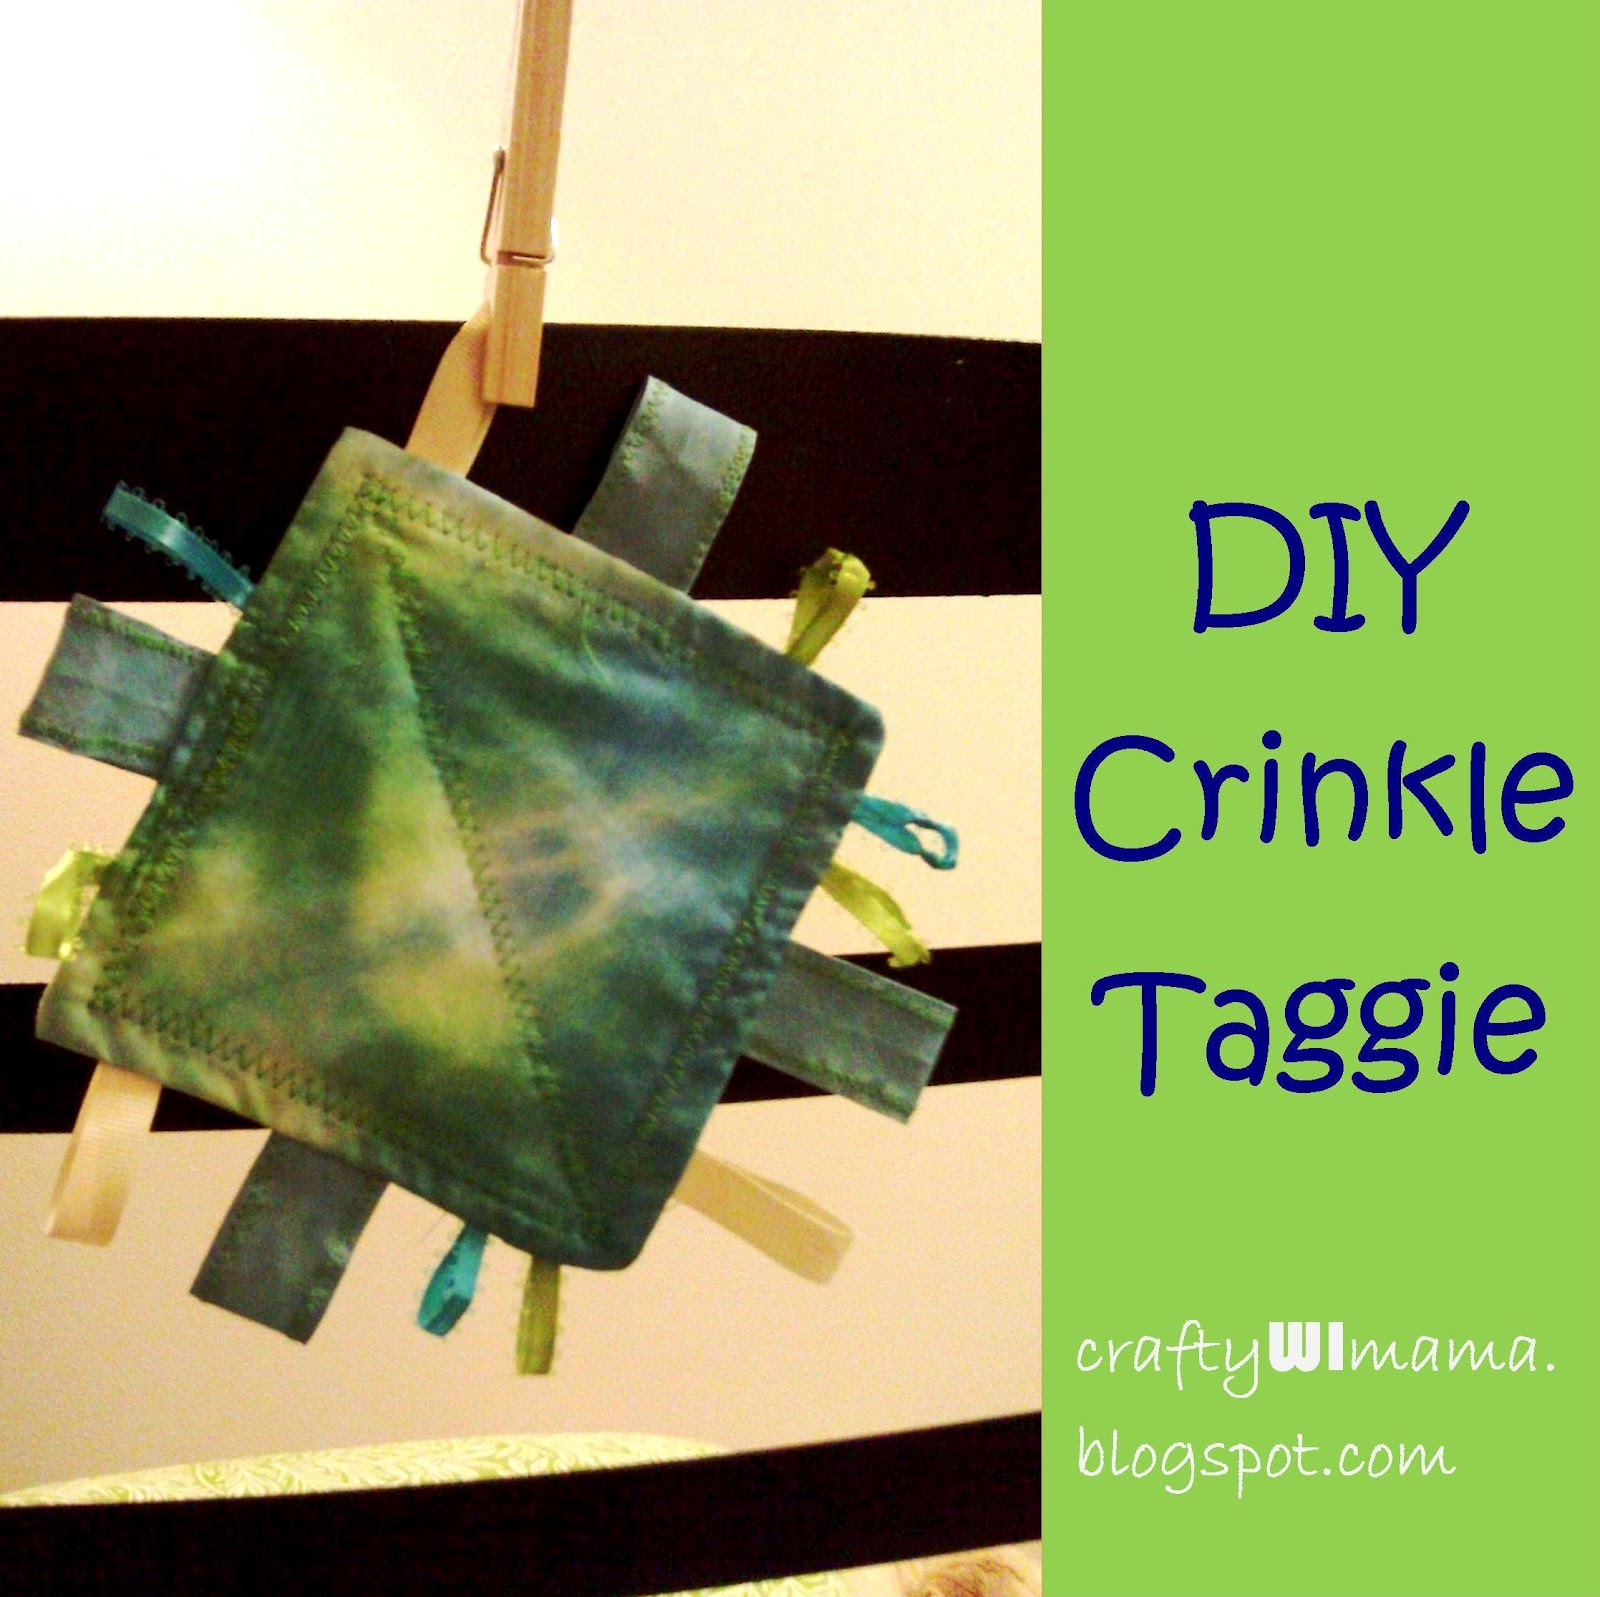 Crafty WI Mama: DIY Baby Gift: Crinkle Taggie Toy